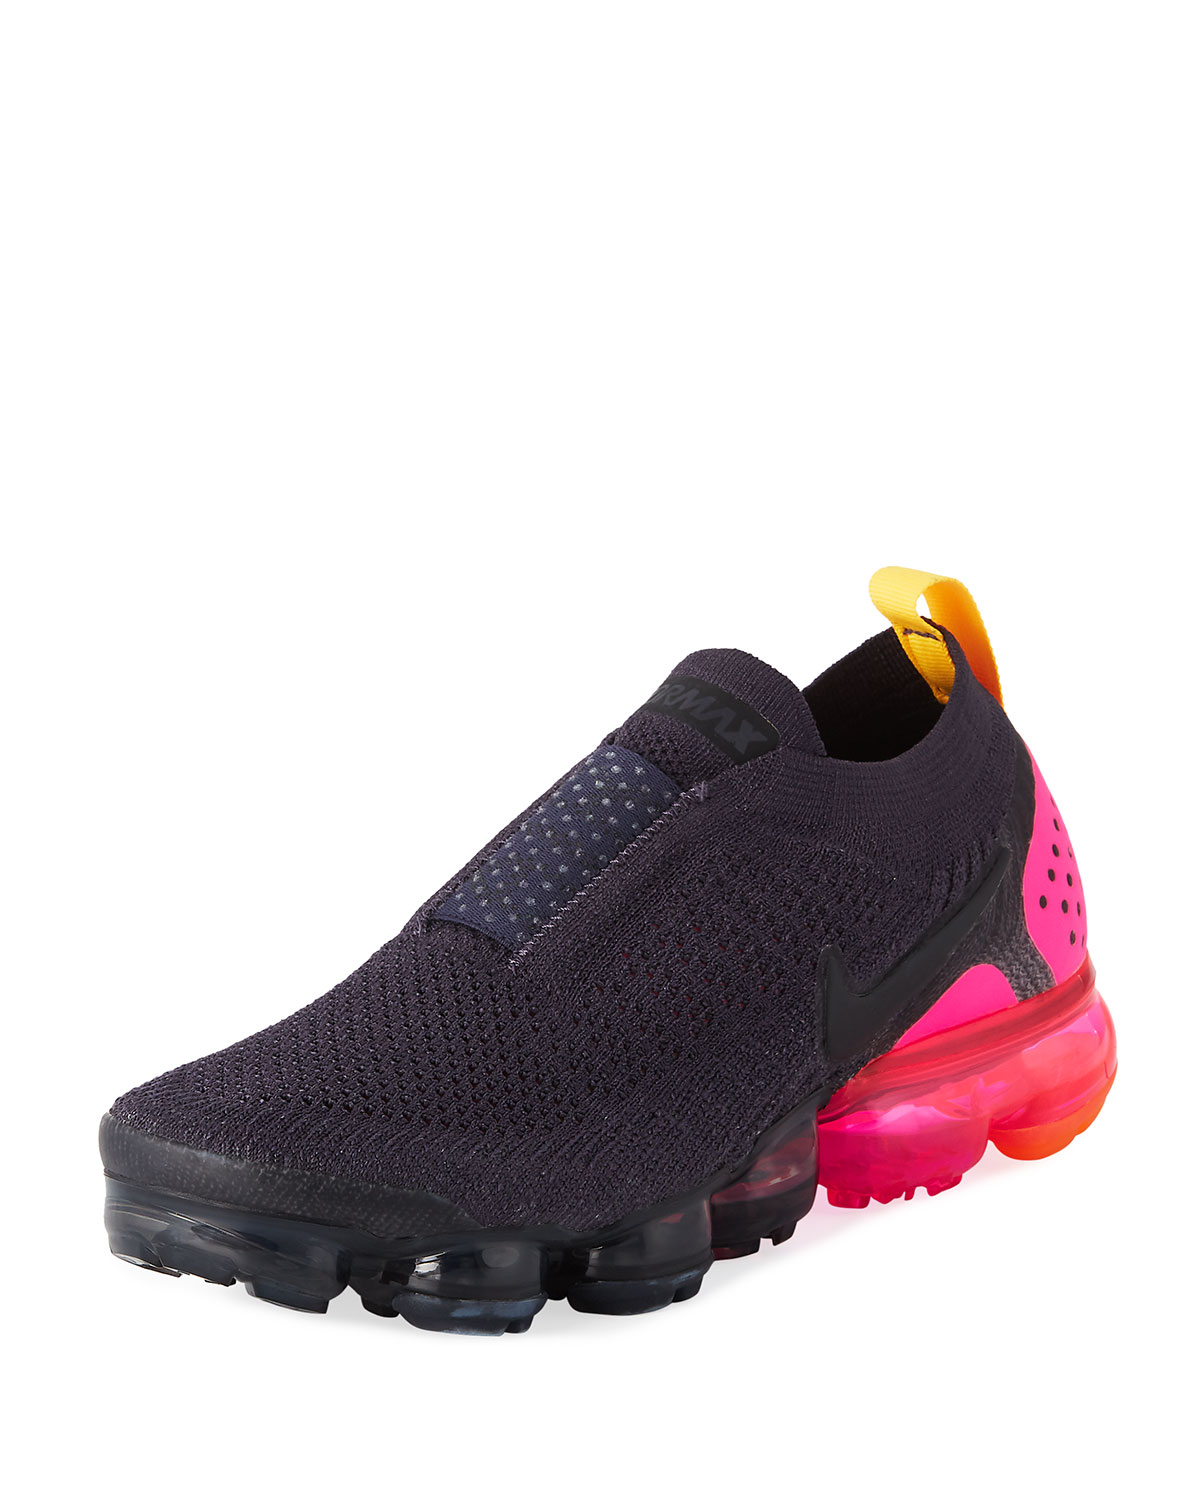 Women'S Air Vapormax Flyknit Moc 2 Running Shoes, Black, Black/Black